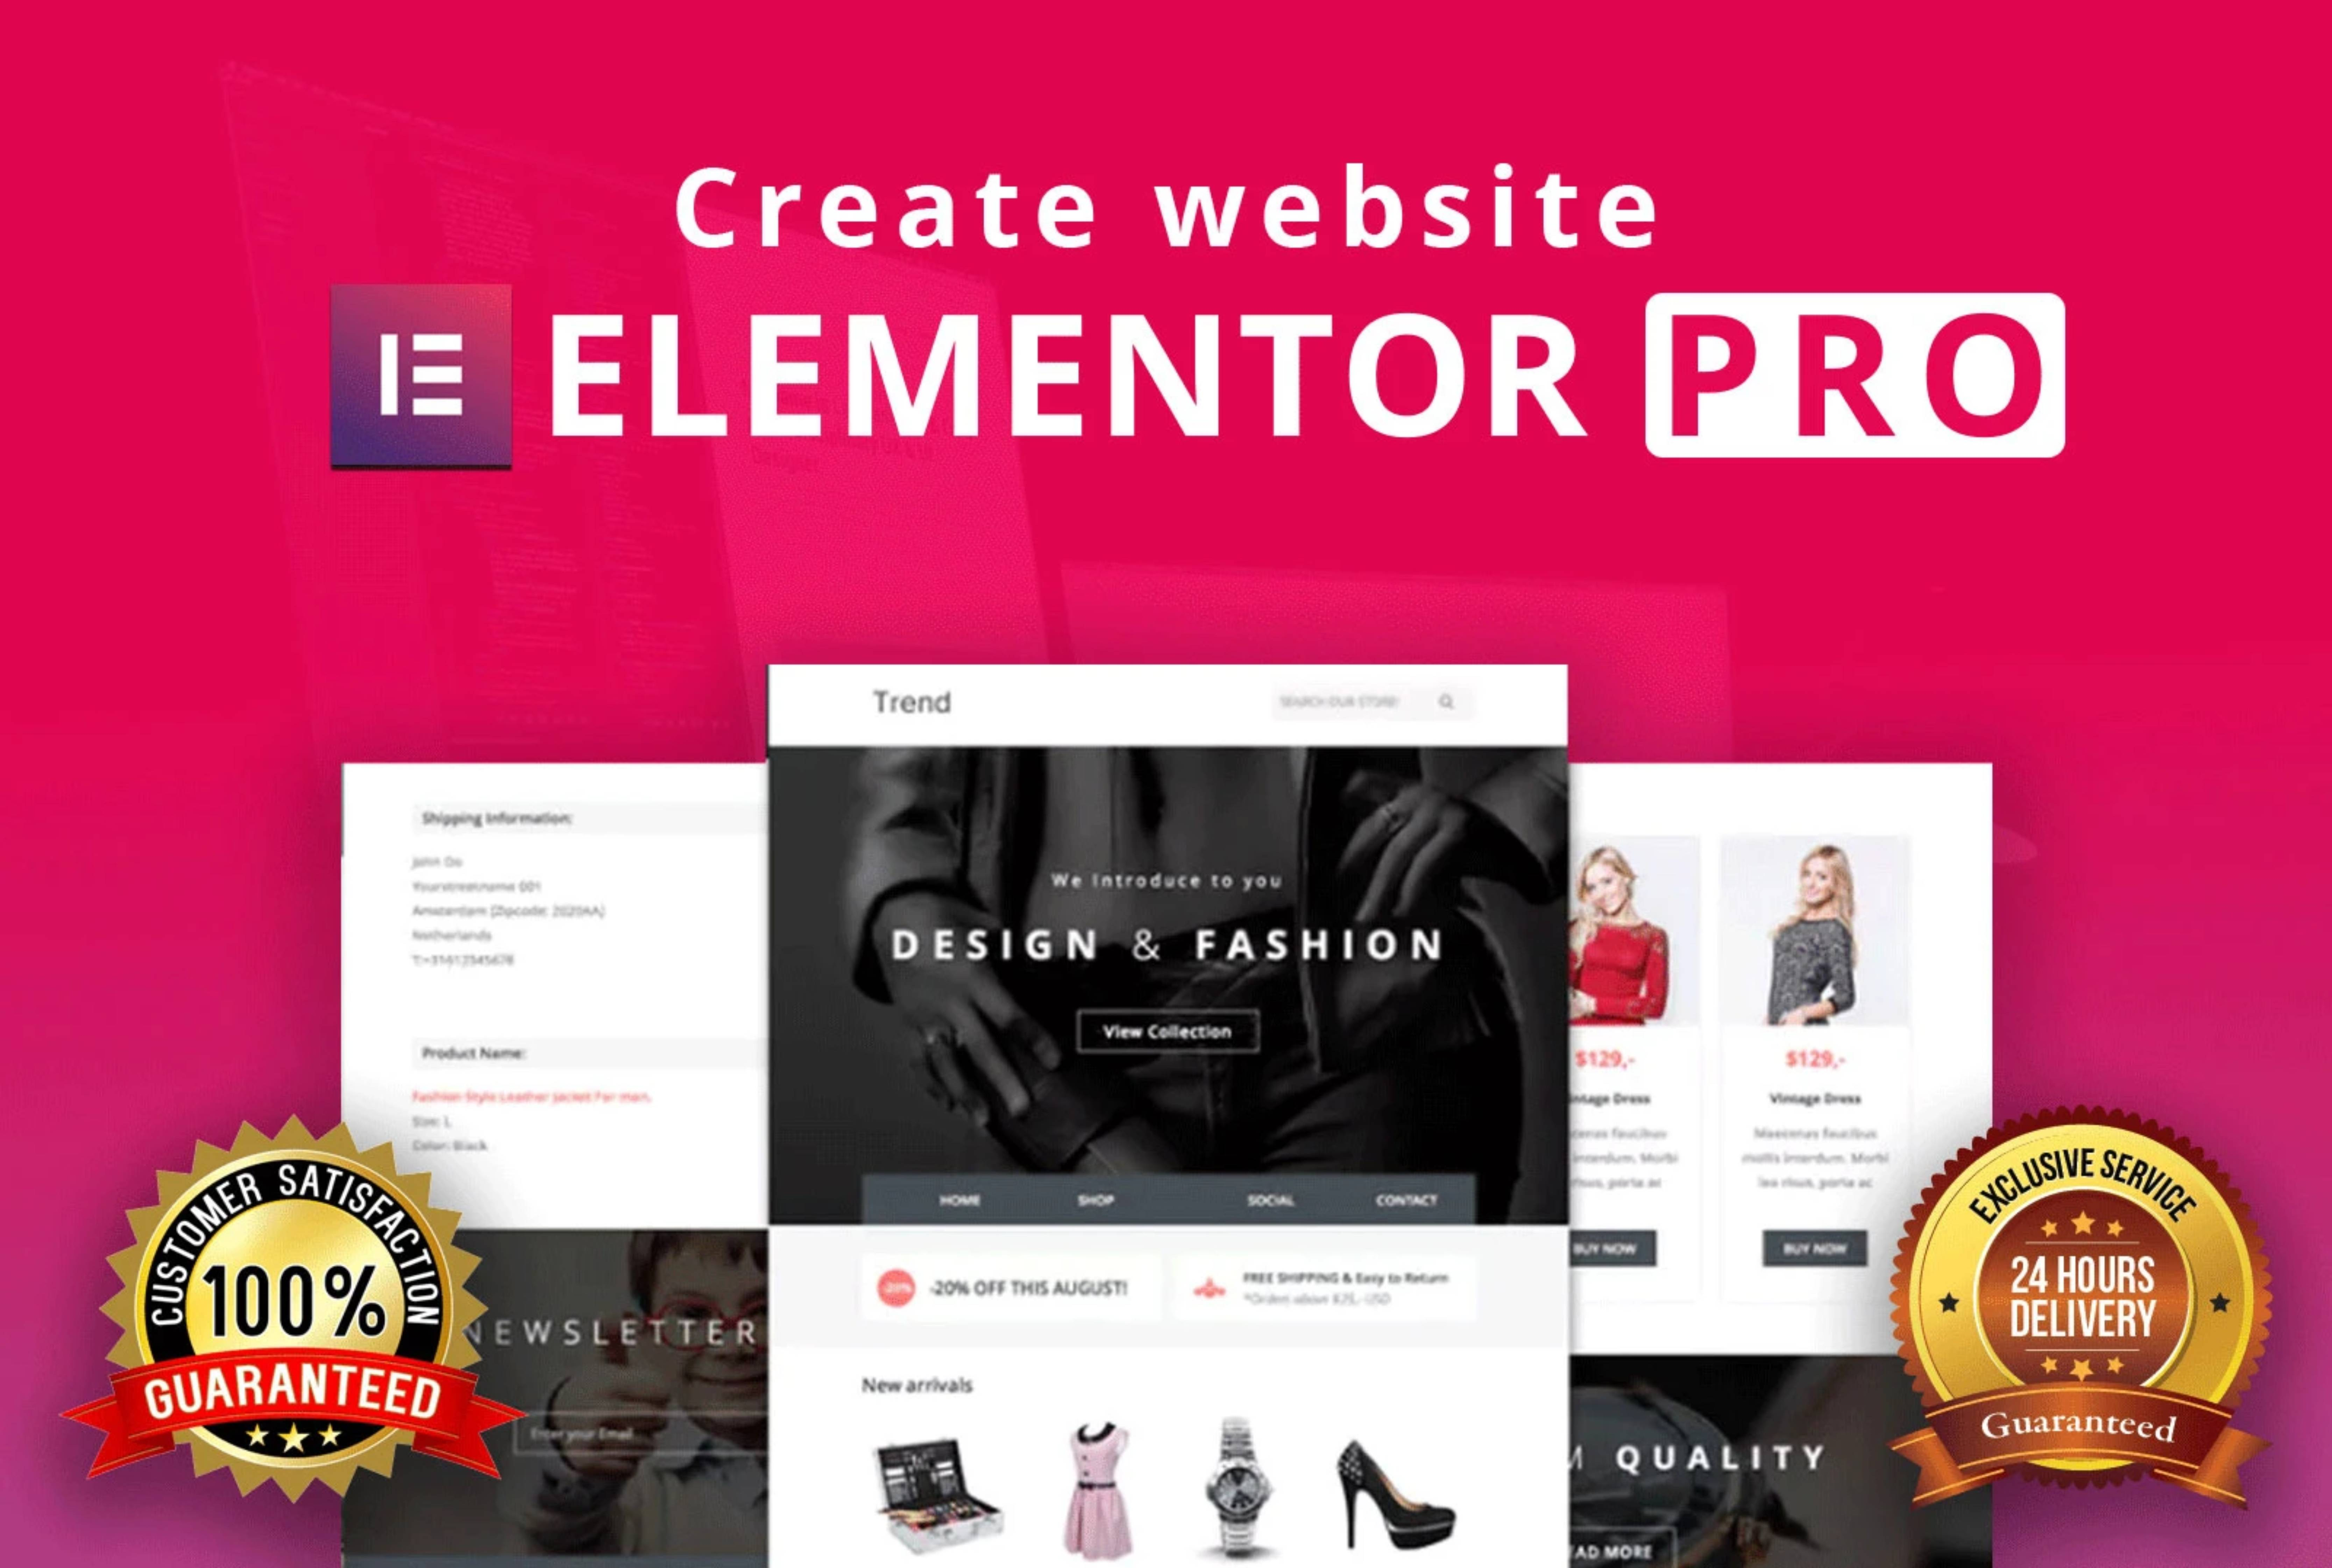 Manually Build WordPress Website Design Using Elementor Pro within 24 hrs for